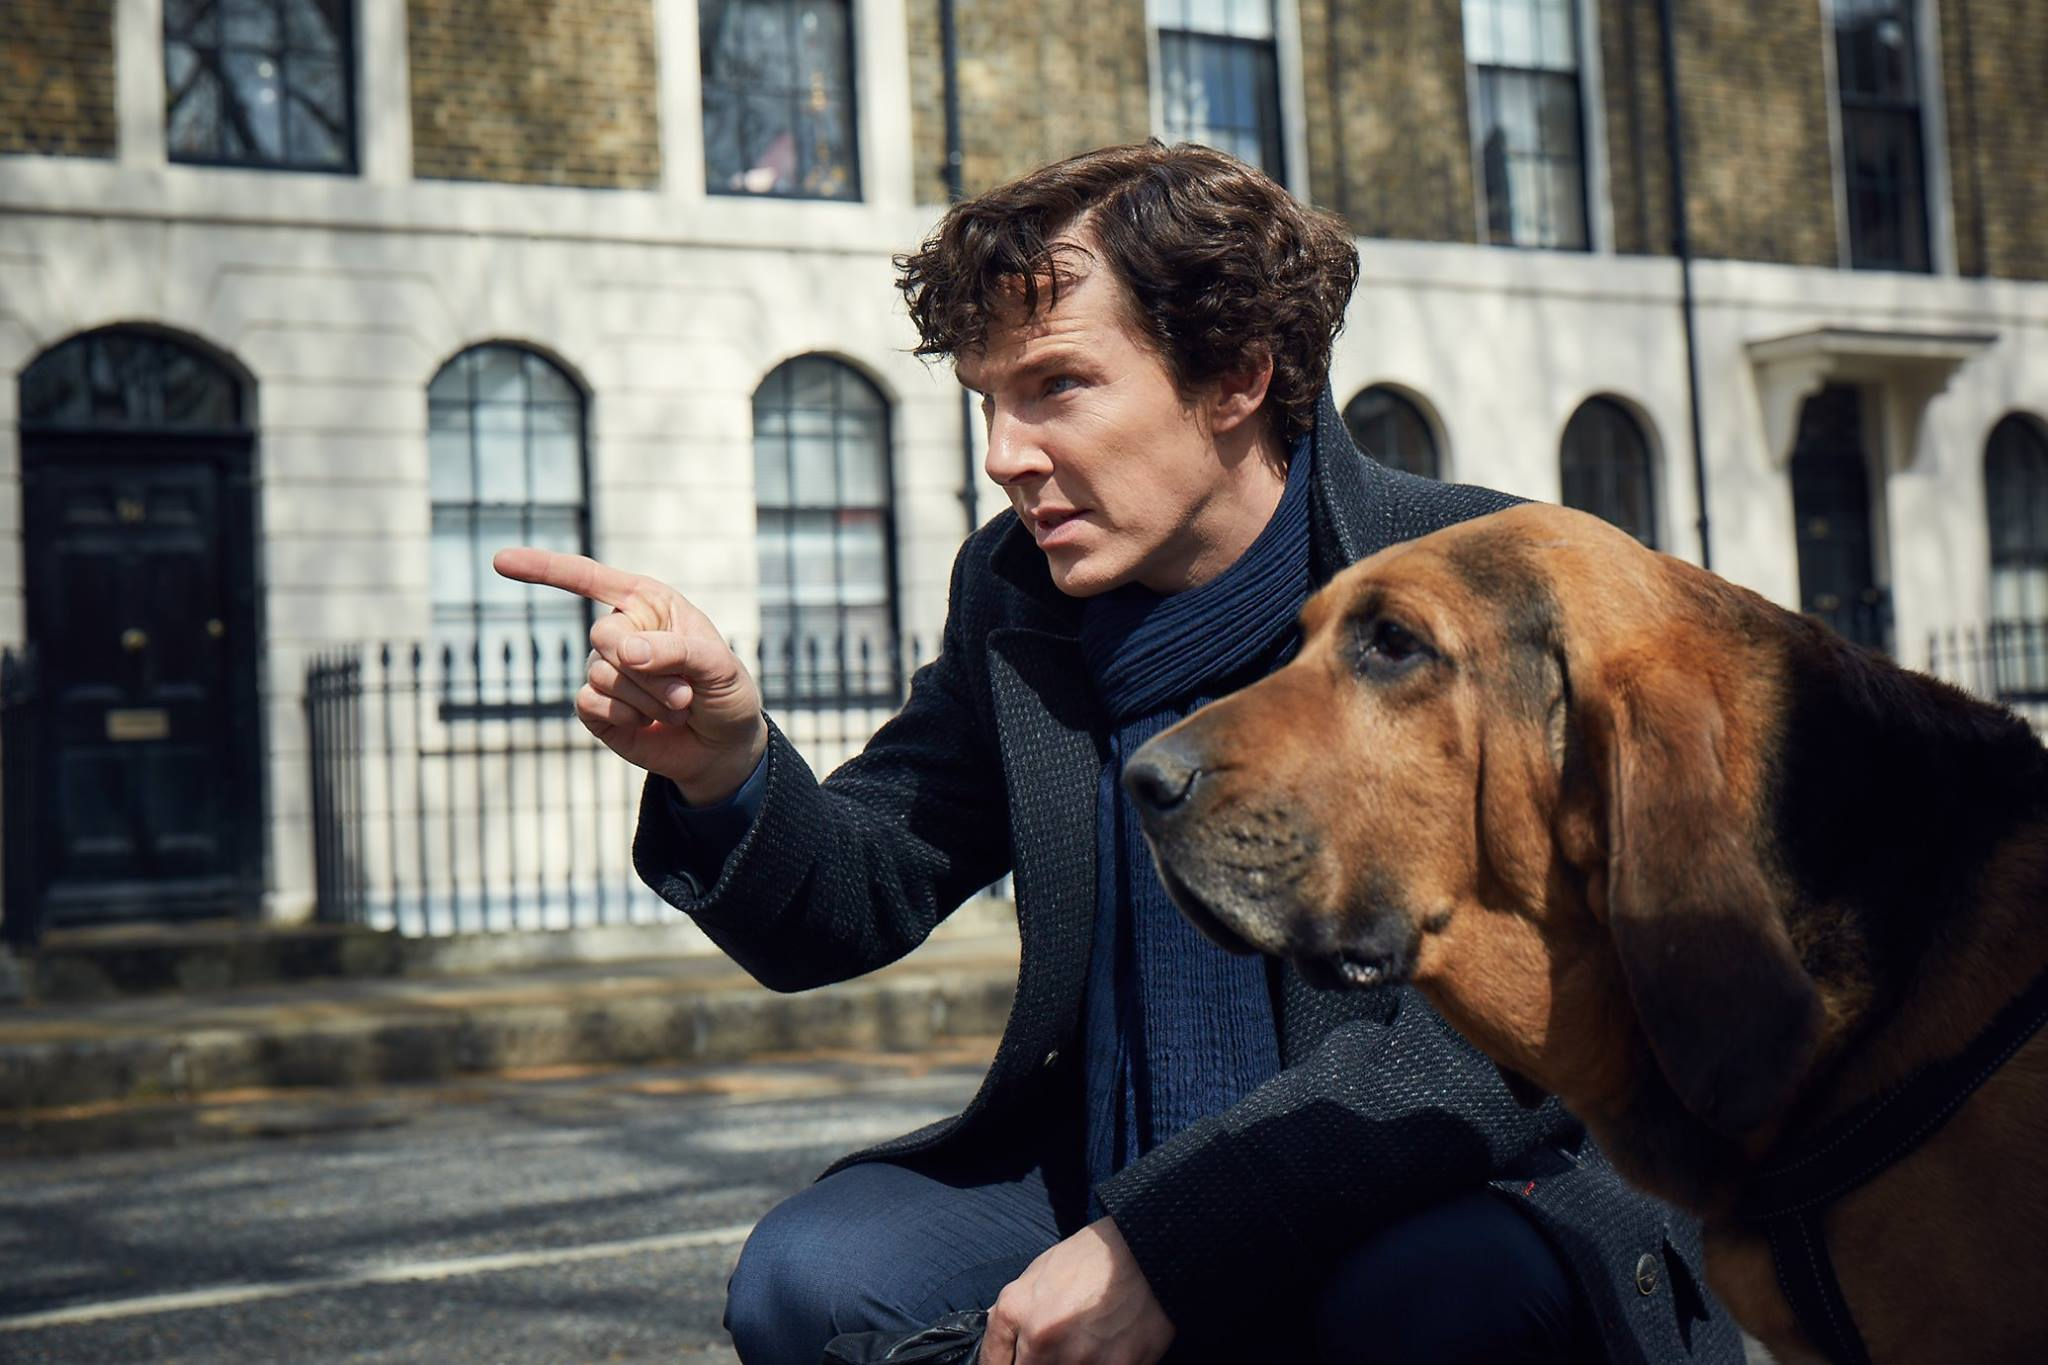 Sherlock Season 4 Image Released